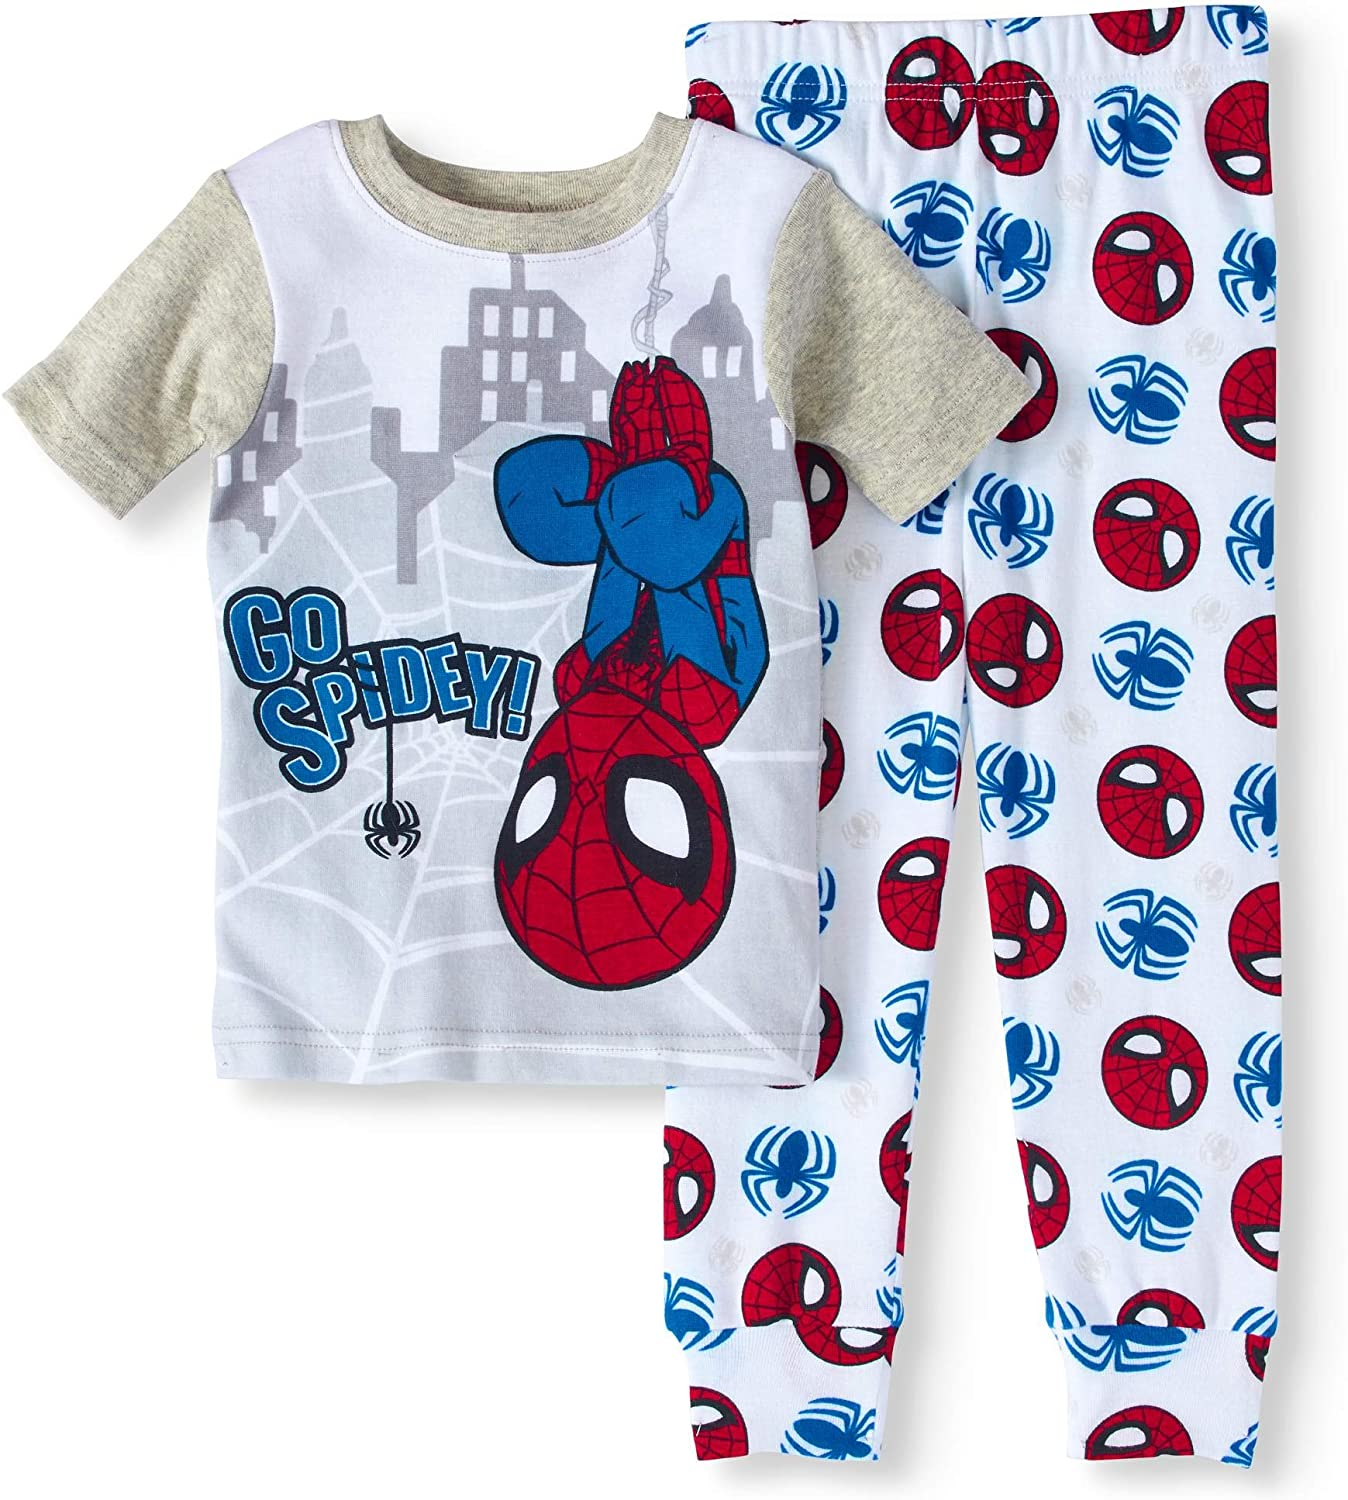 Marvel Spiderman Toddler Girls T-Shirts Size 3T or 4T or 5T NWT